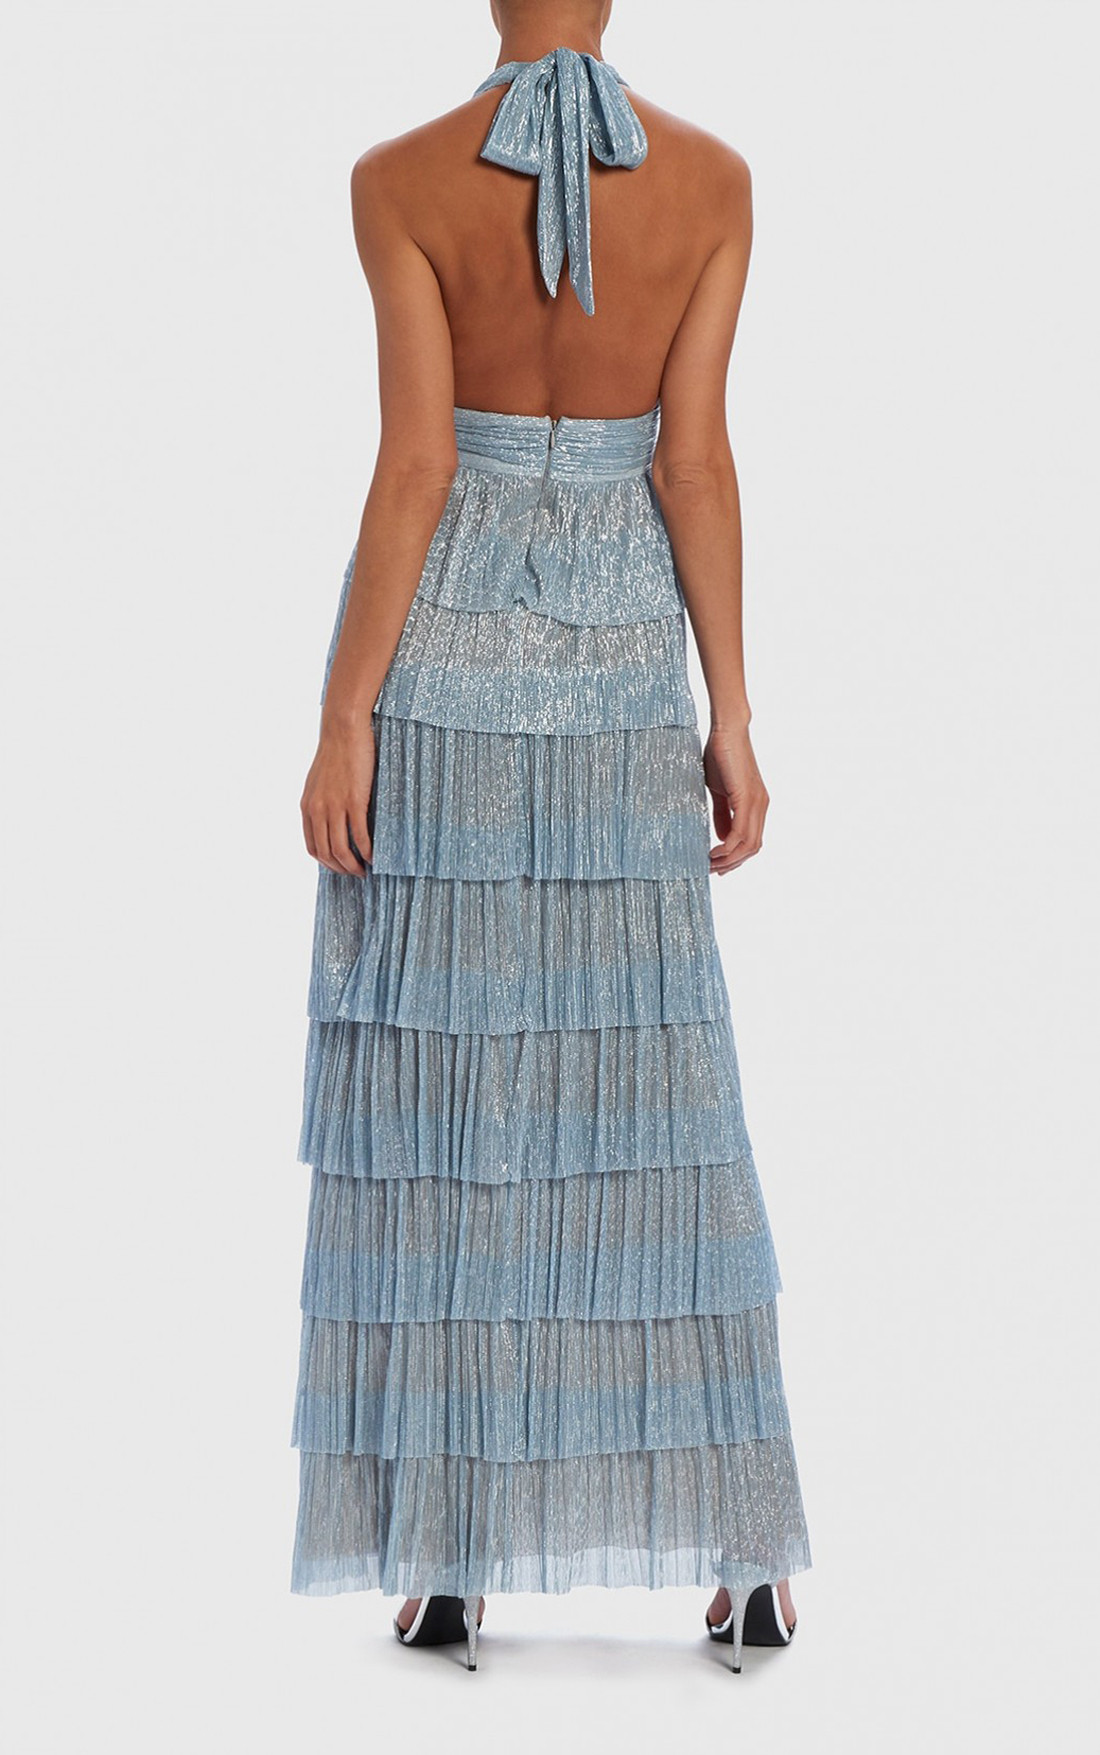 Forever Unique - Marleen Metallic Blue Shimmer Tiered Ruffle Maxi Dress (AF9724)